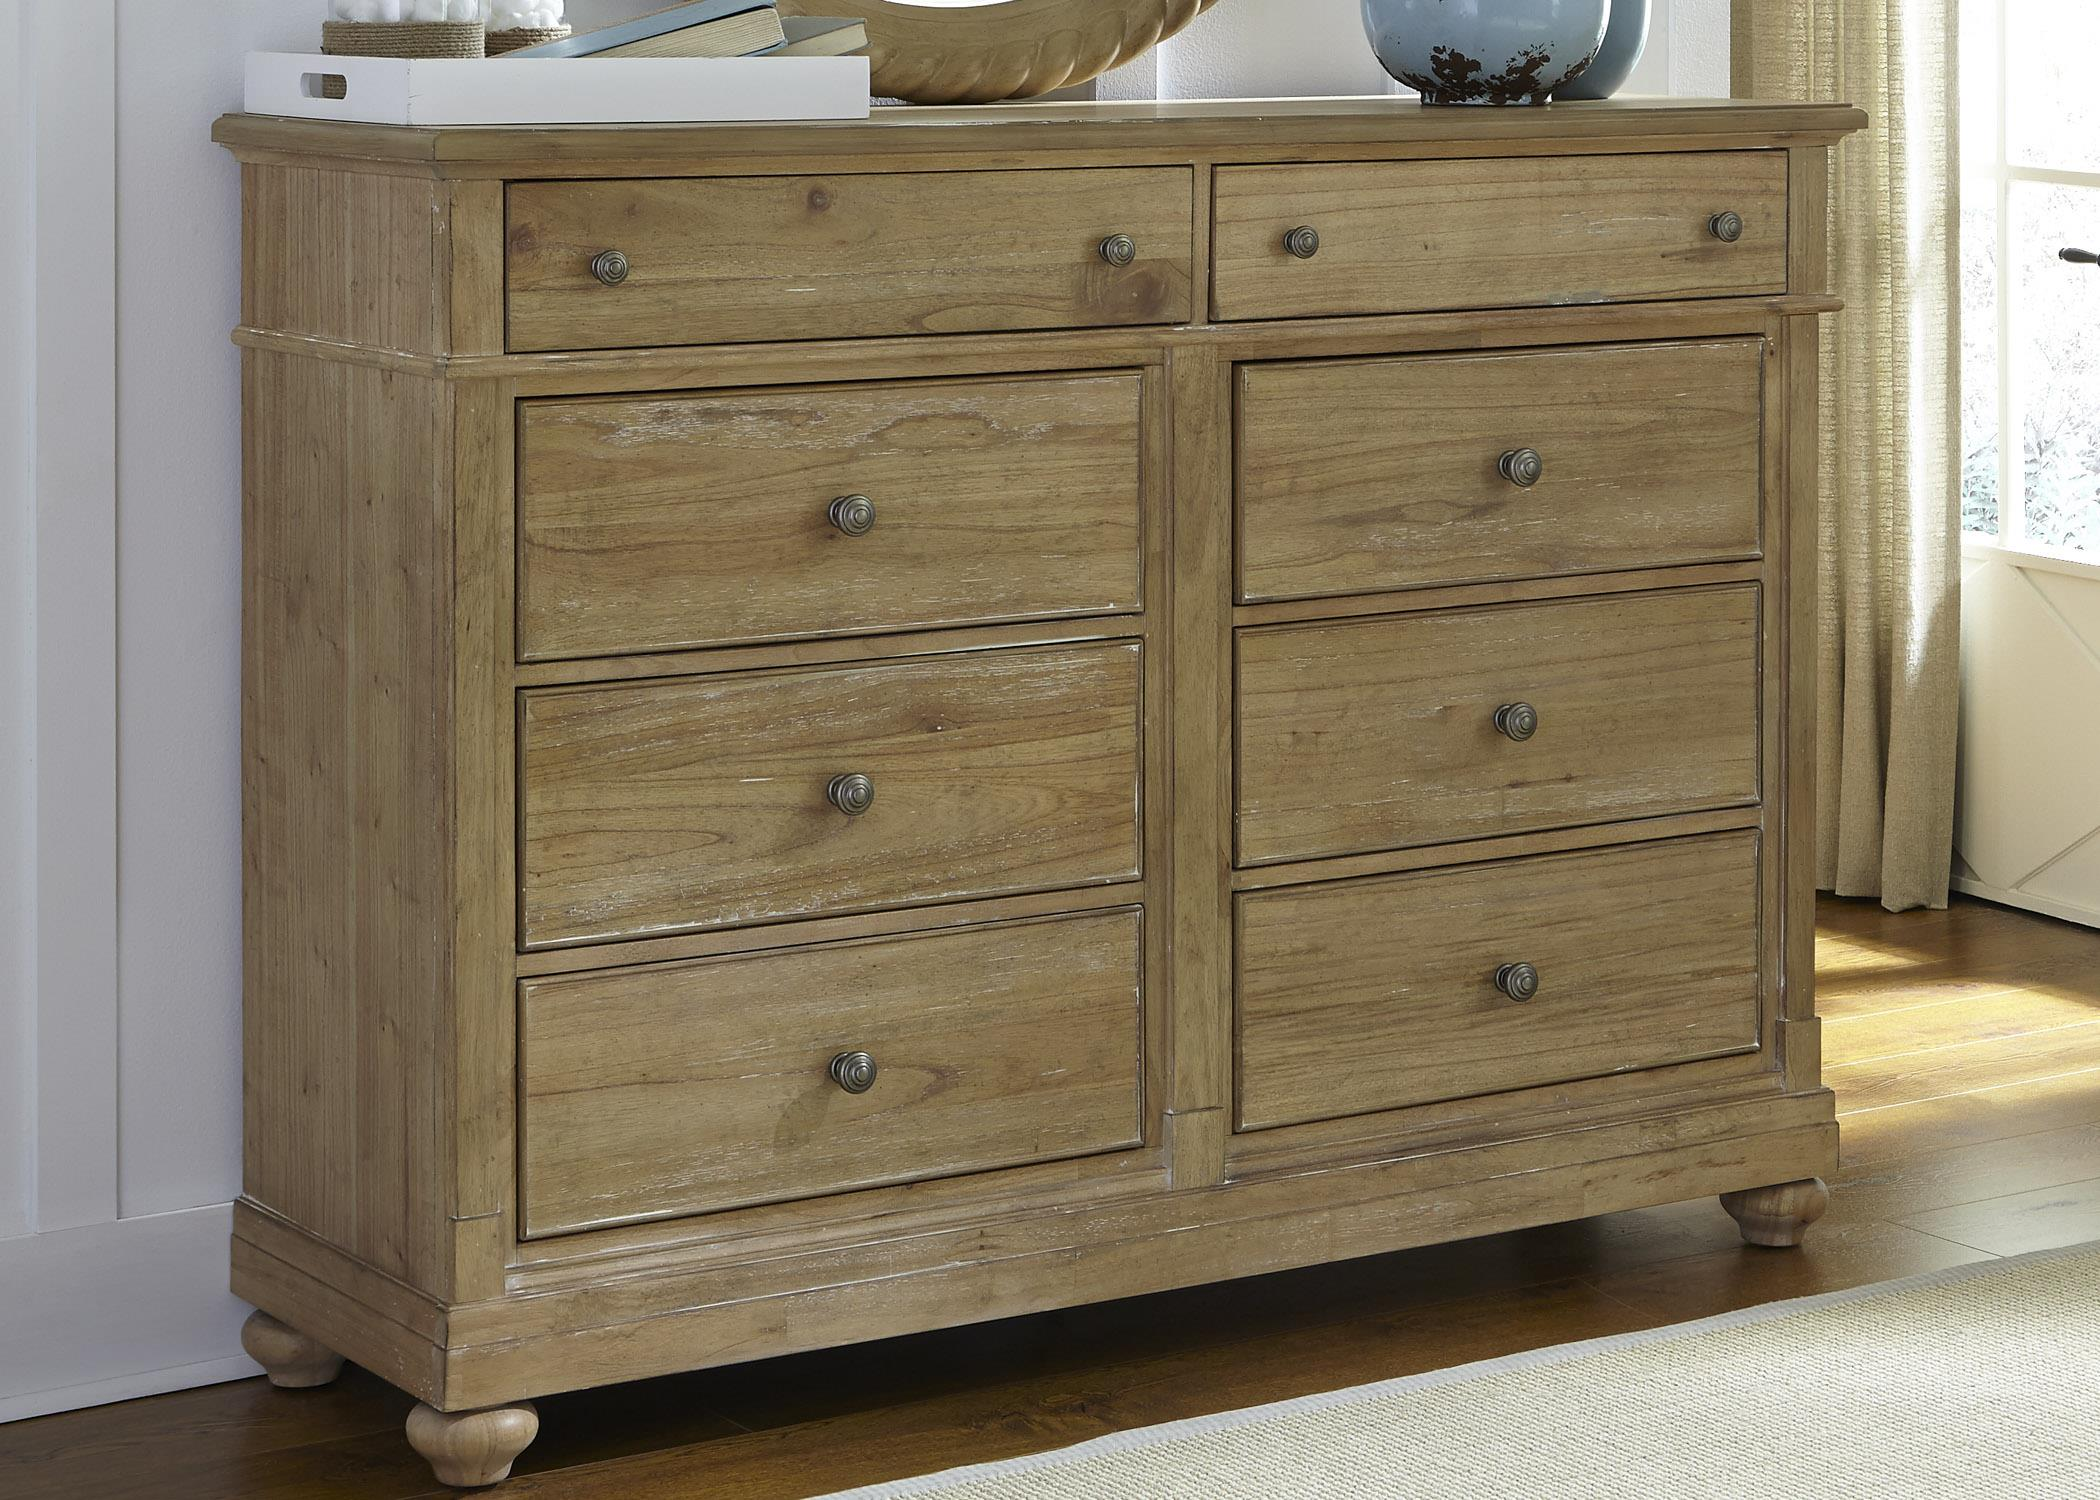 Liberty Furniture Harbor View Dresser with 8 Drawers - Item Number: 531-BR32